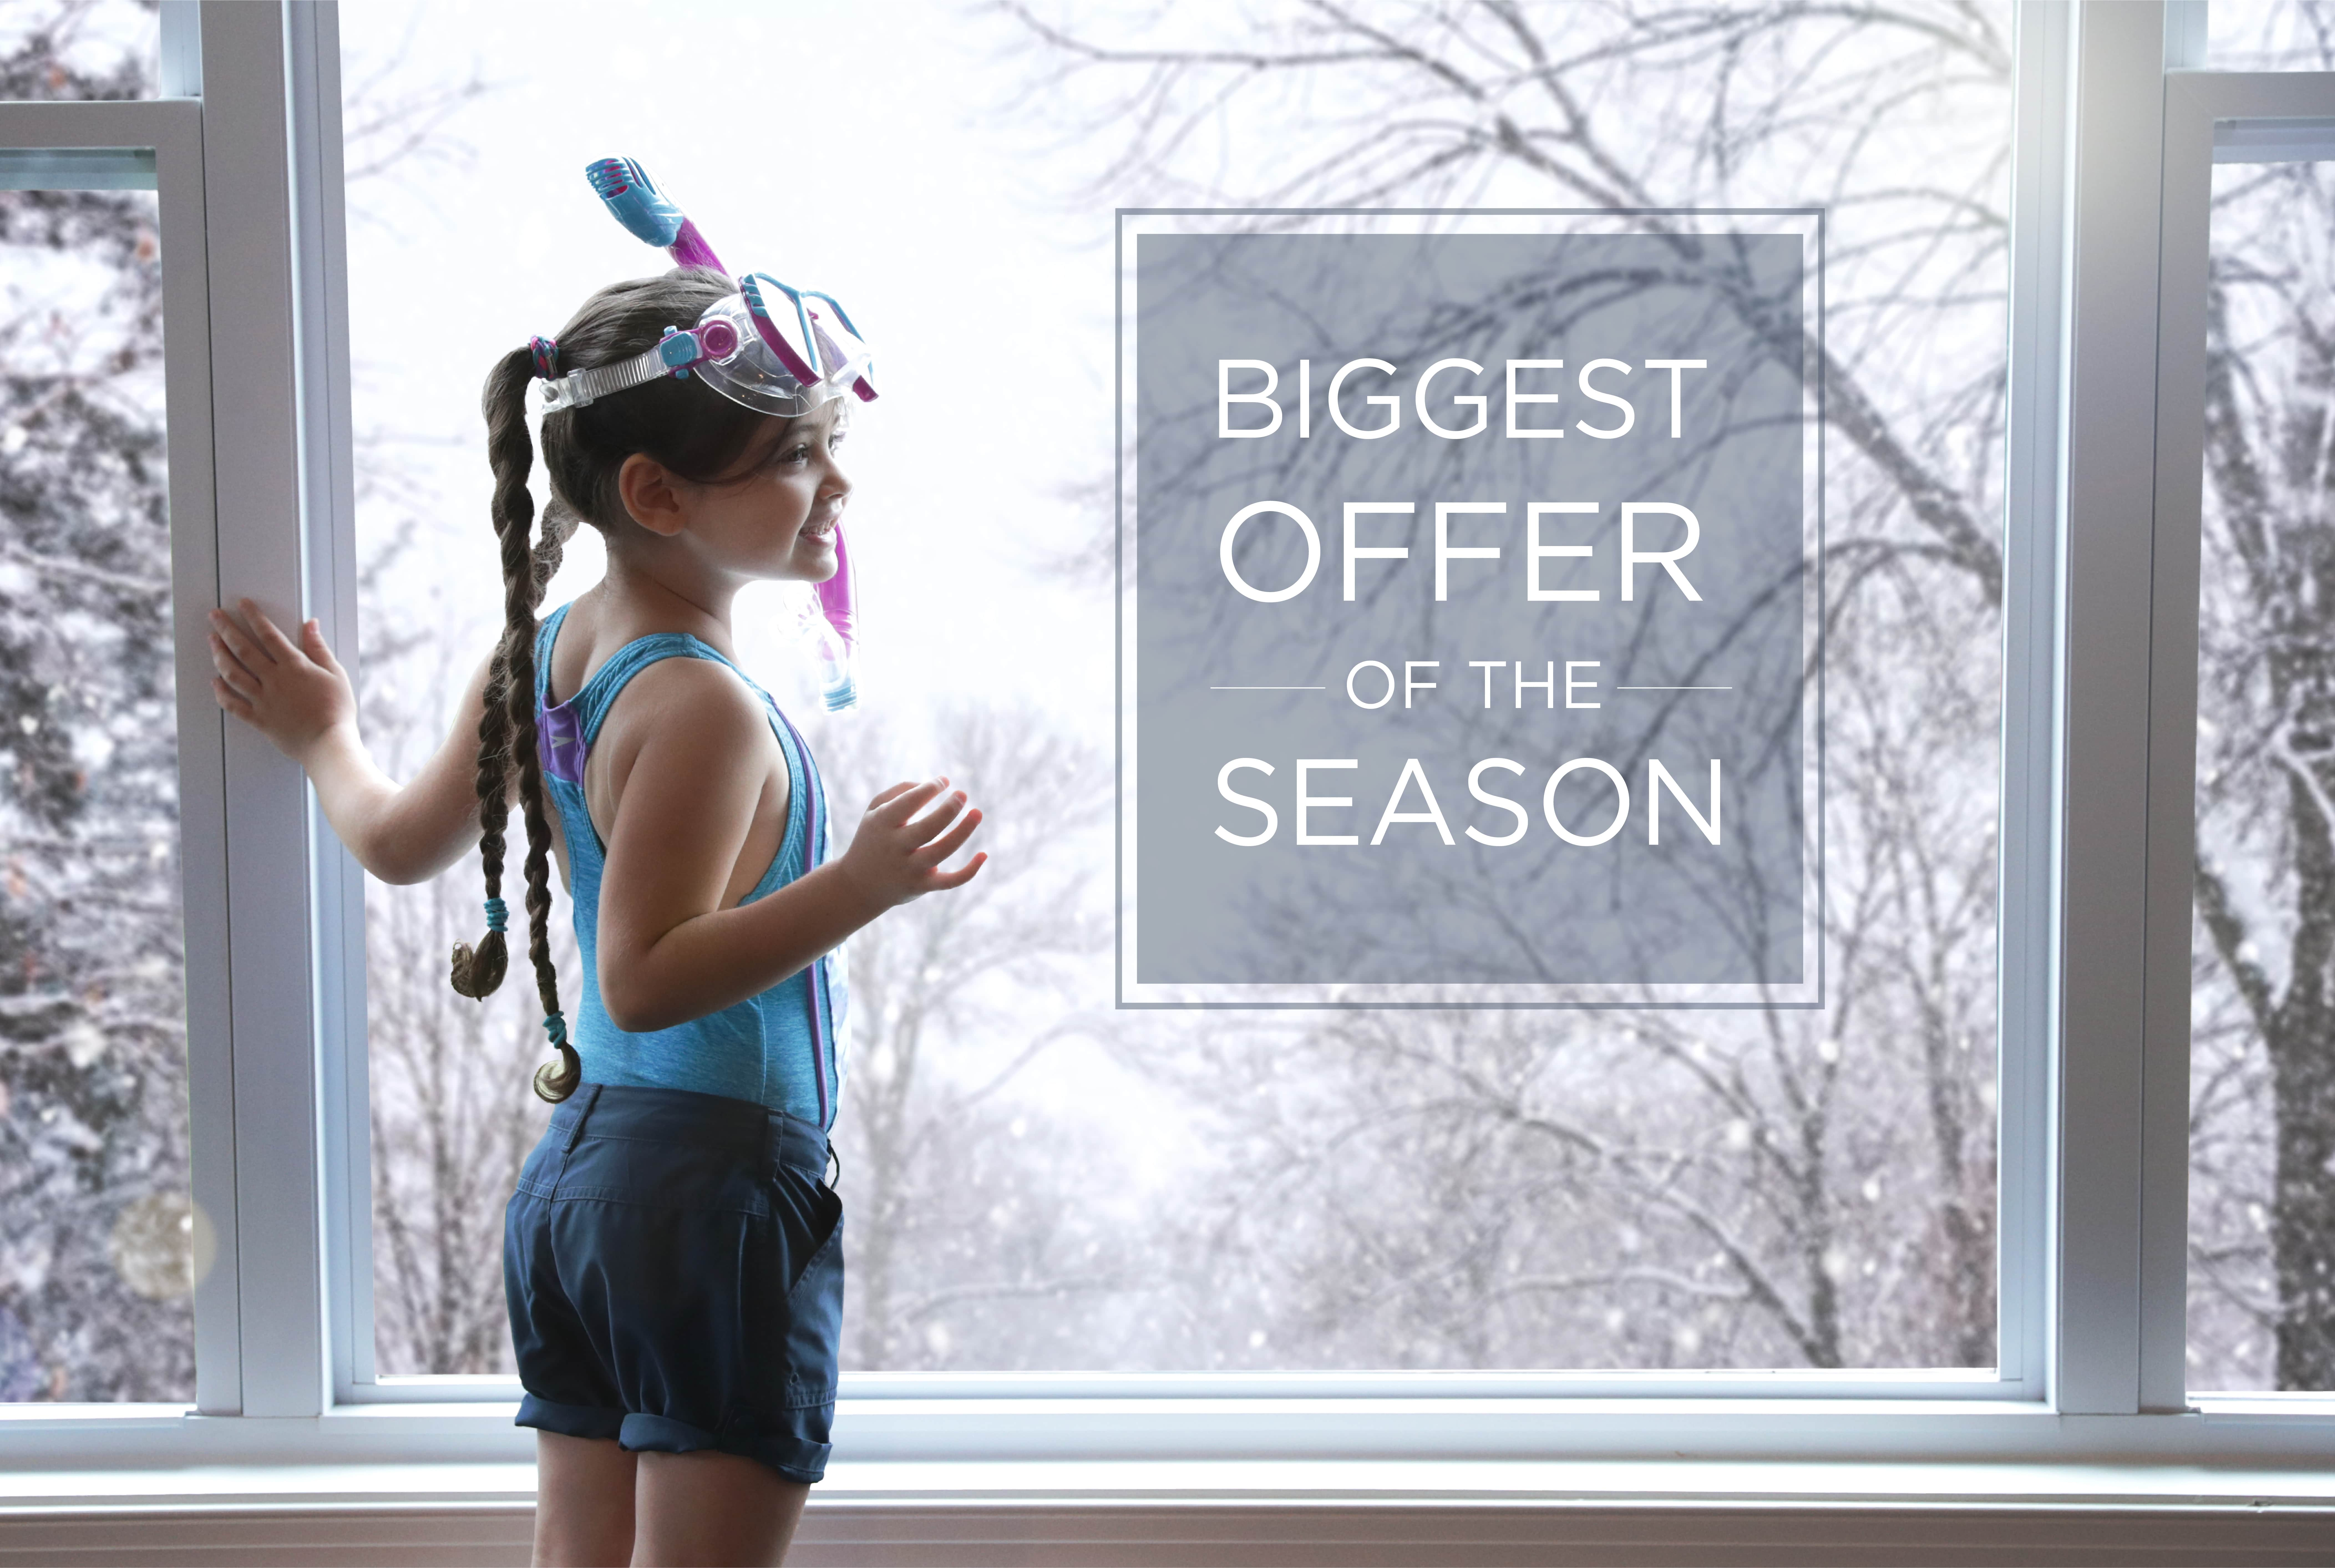 Biggest Offer of the Season